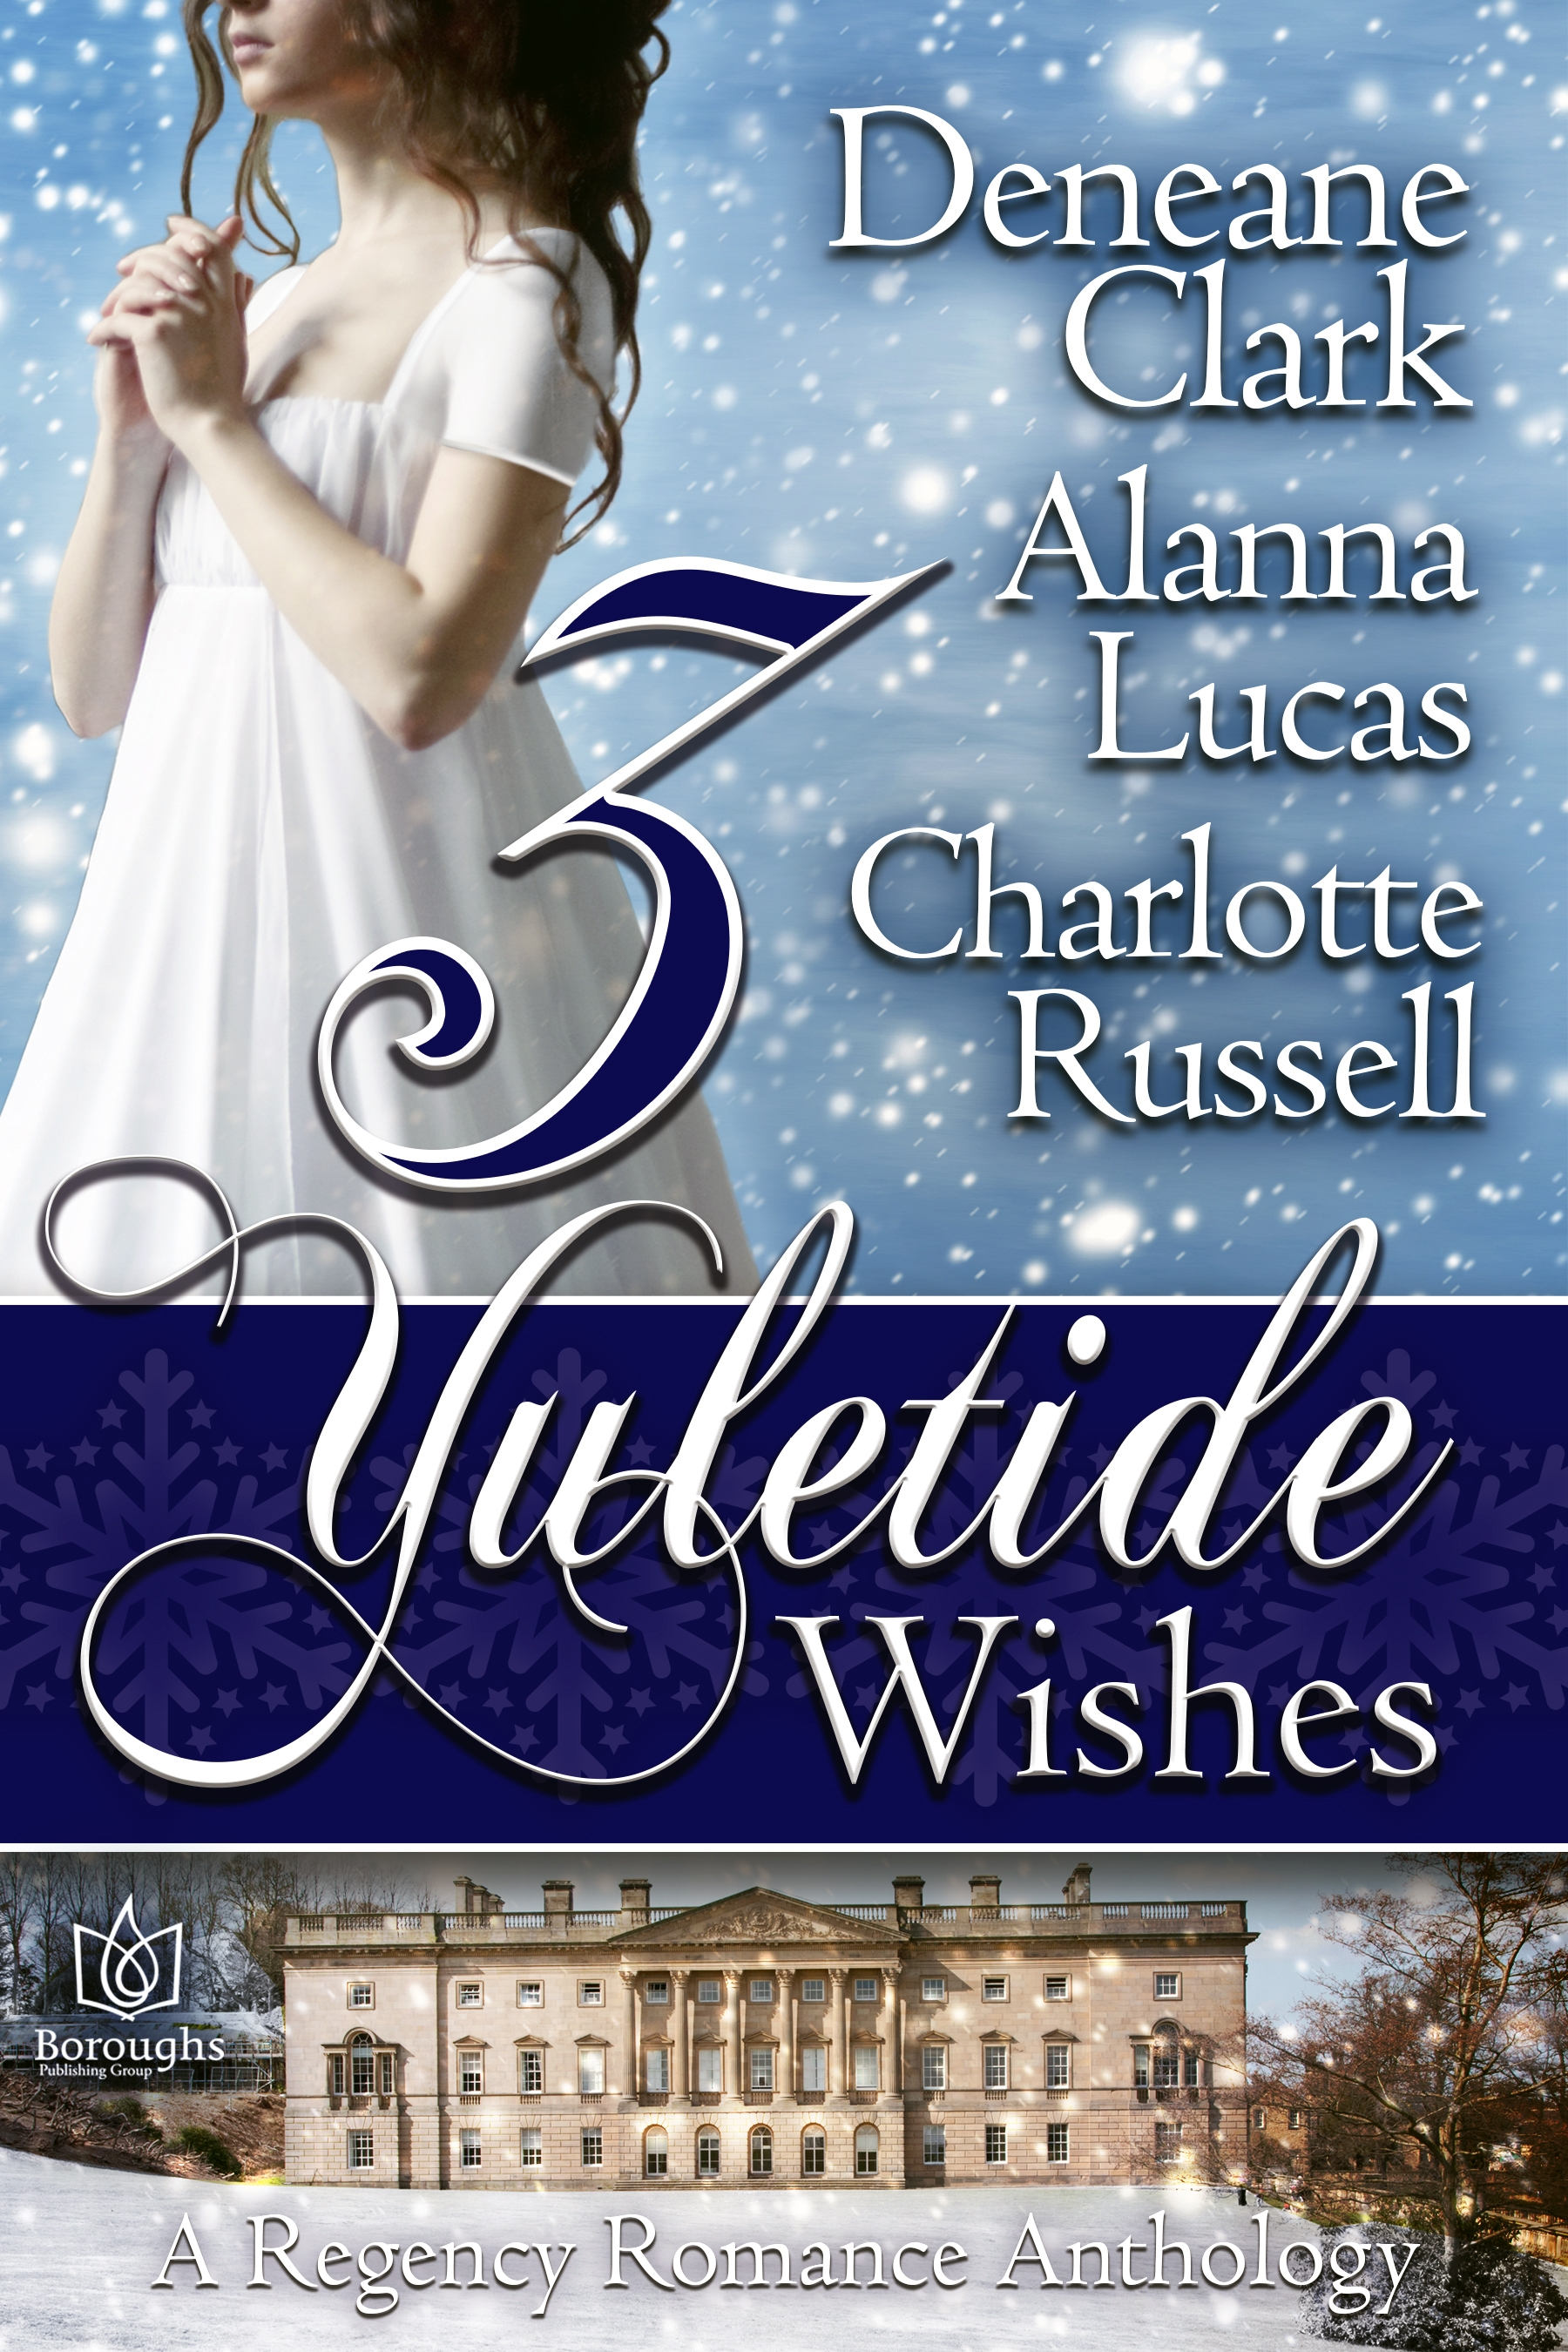 Cover image for 3 YULETIDE WISHES, an anthology by Deneane Clark, Alanna Lucas and Charlotte Russell